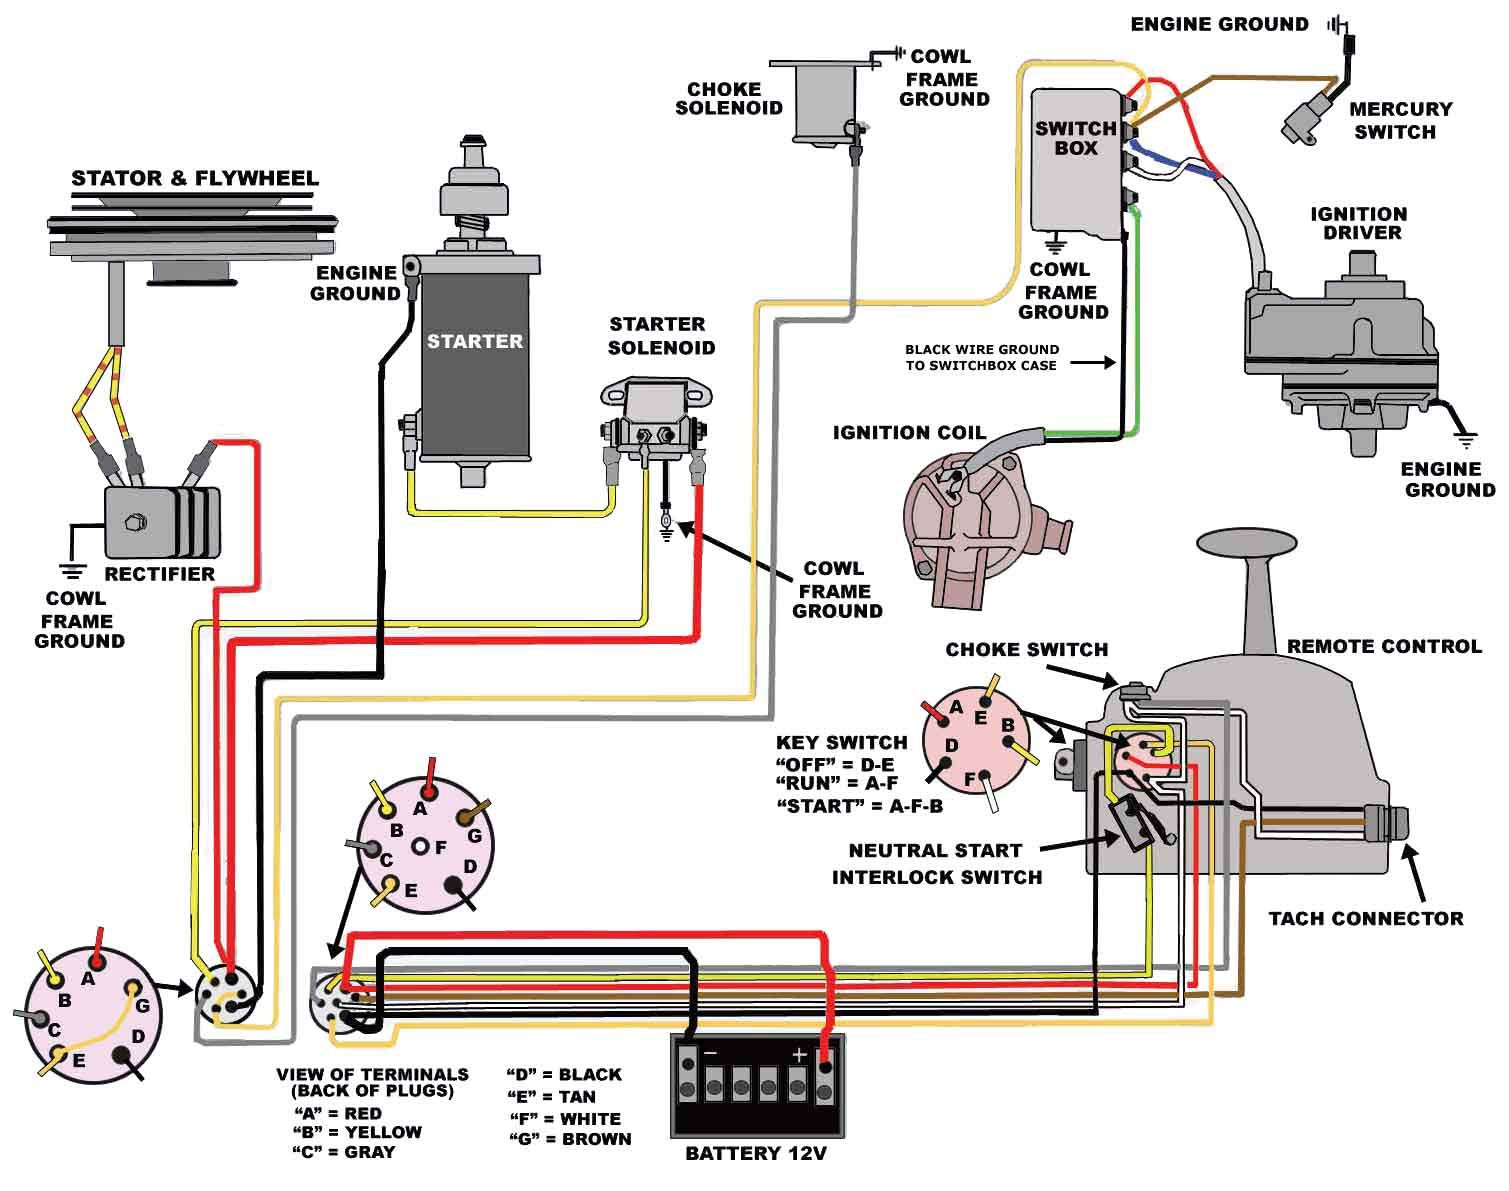 50 merc fuel sending unit wiring diagram wiring diagram third level rh 11 2 13 jacobwinterstein com boat fuel sending unit wiring diagram marine fuel  [ 1509 x 1191 Pixel ]